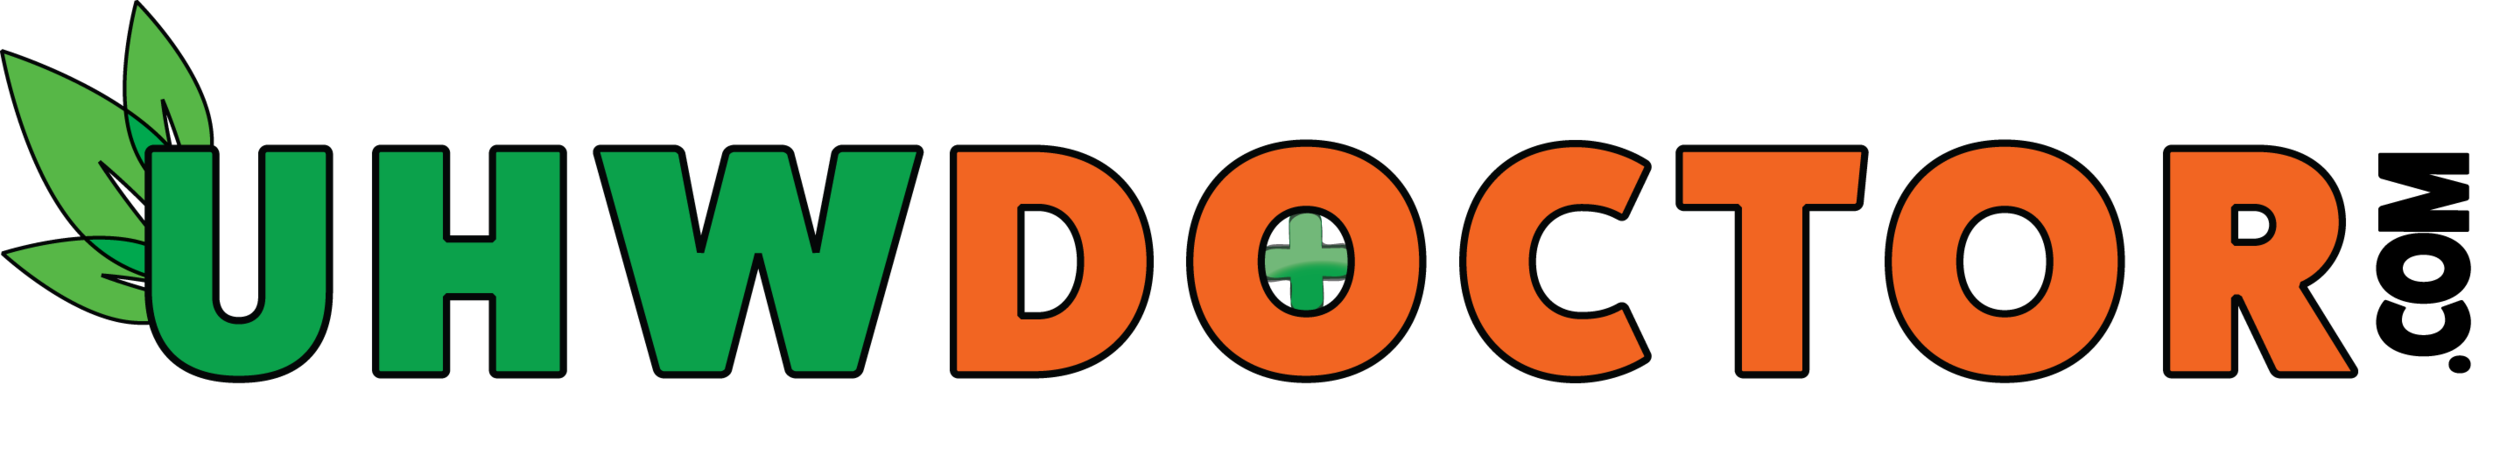 UHW Doctor logo final.png